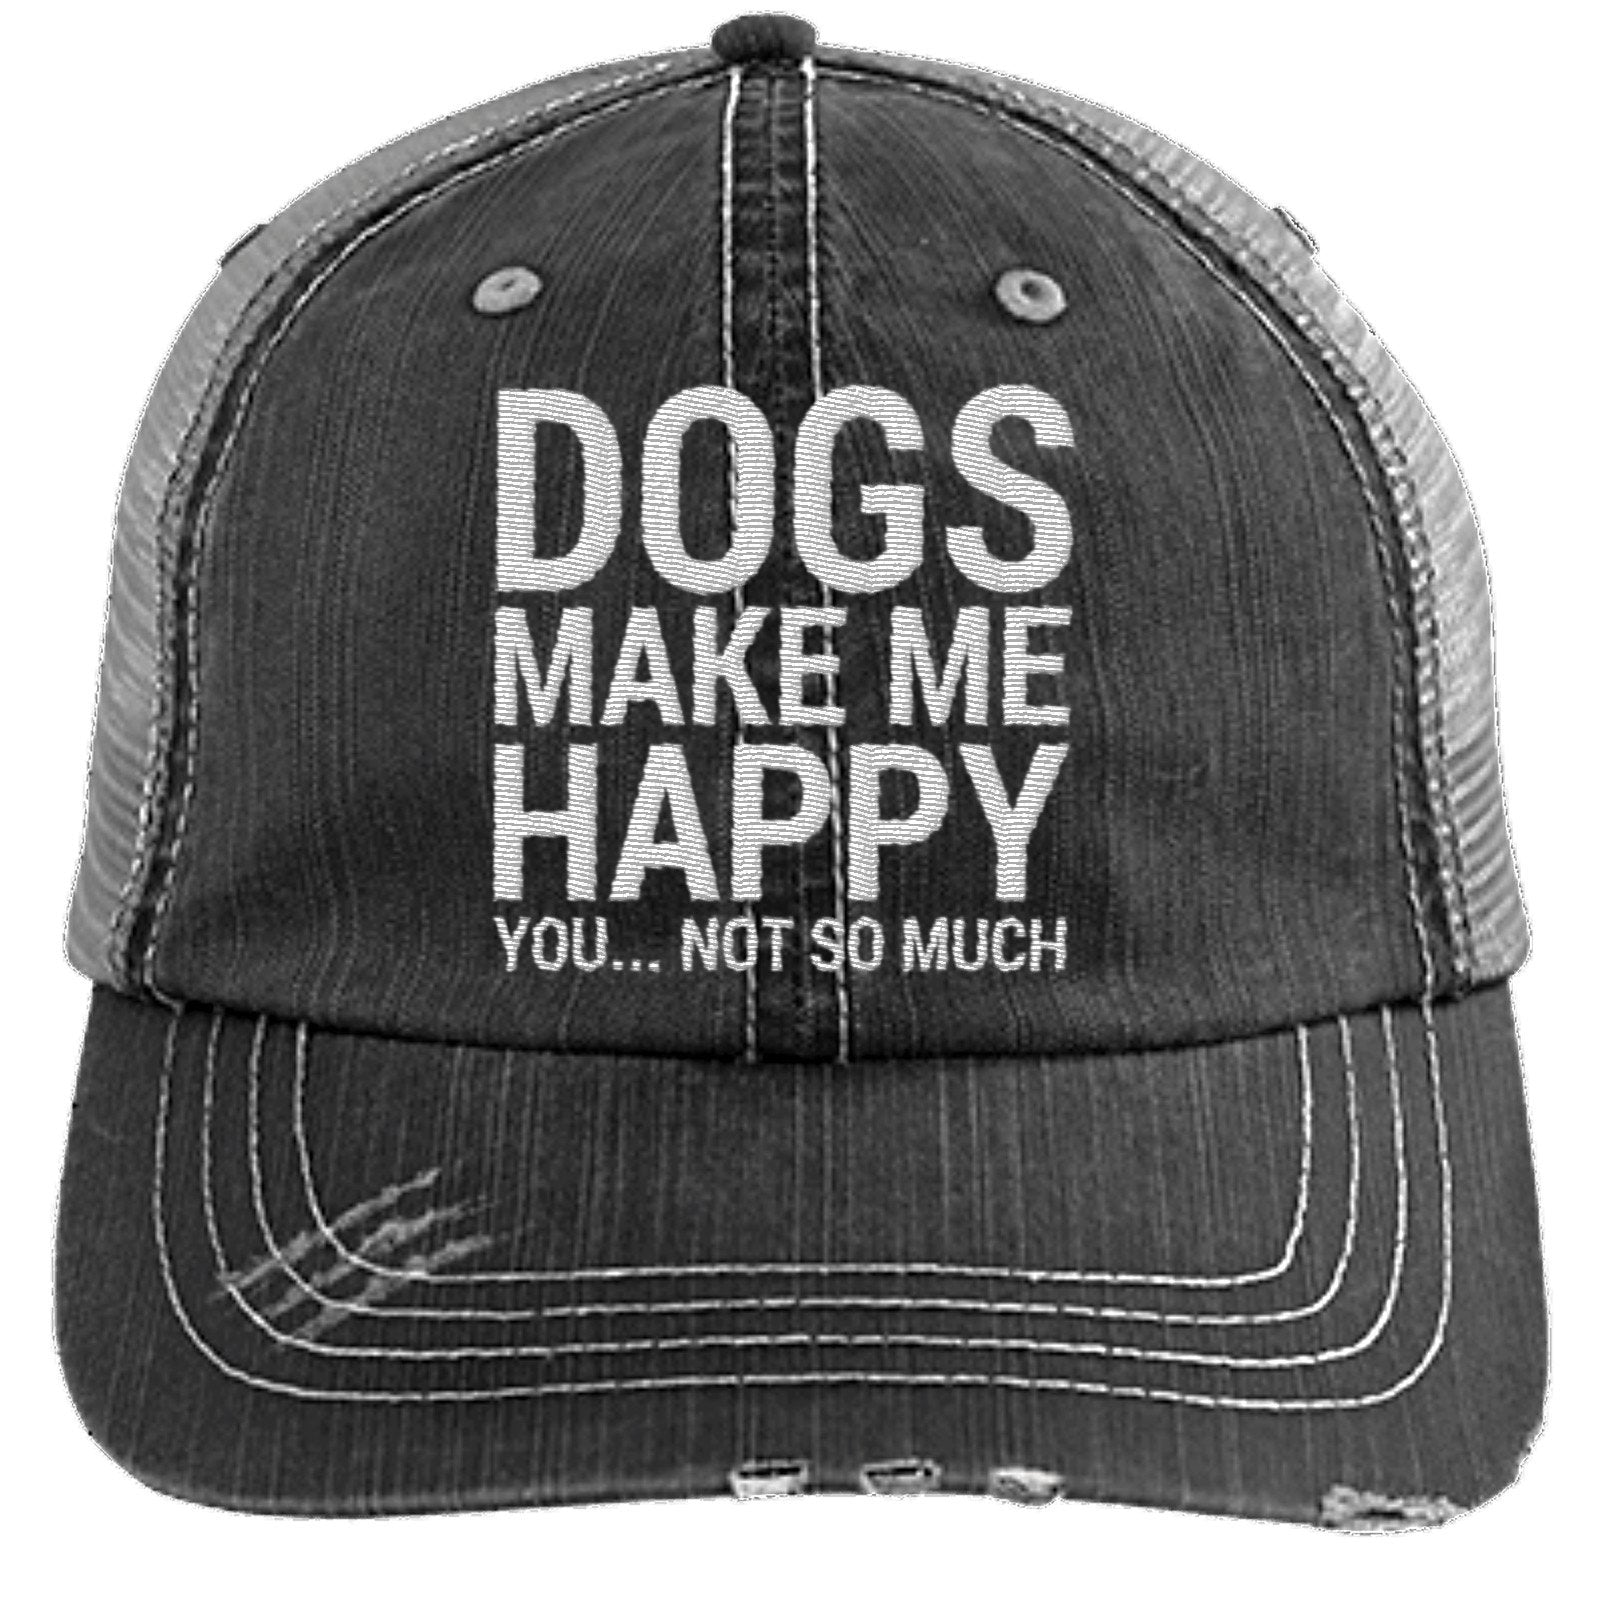 4a90d5018 DOGS MAKE ME HAPPY DISTRESSED TRUCKER CAP